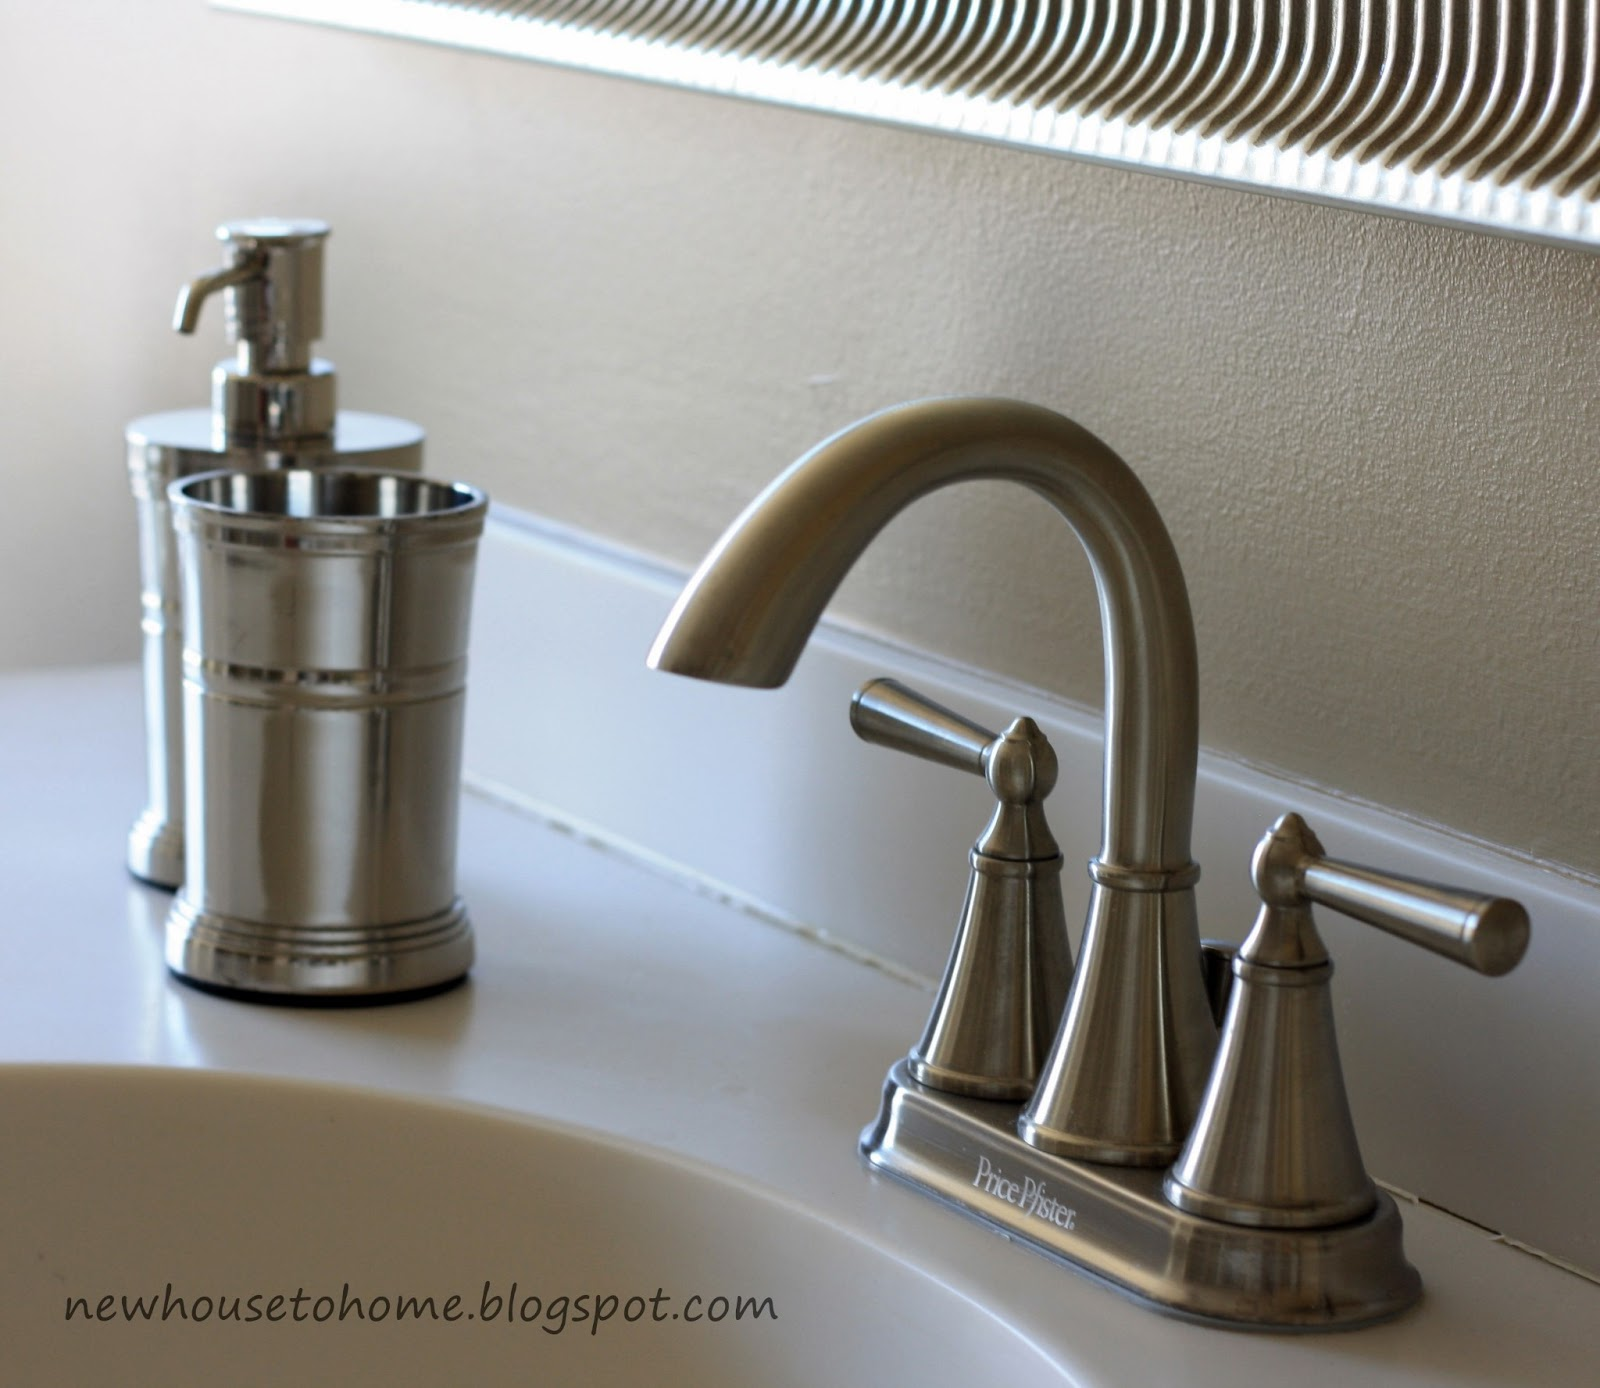 Kitchen Sink Faucets Home Depot: Home Depot Paint Coupons Printable